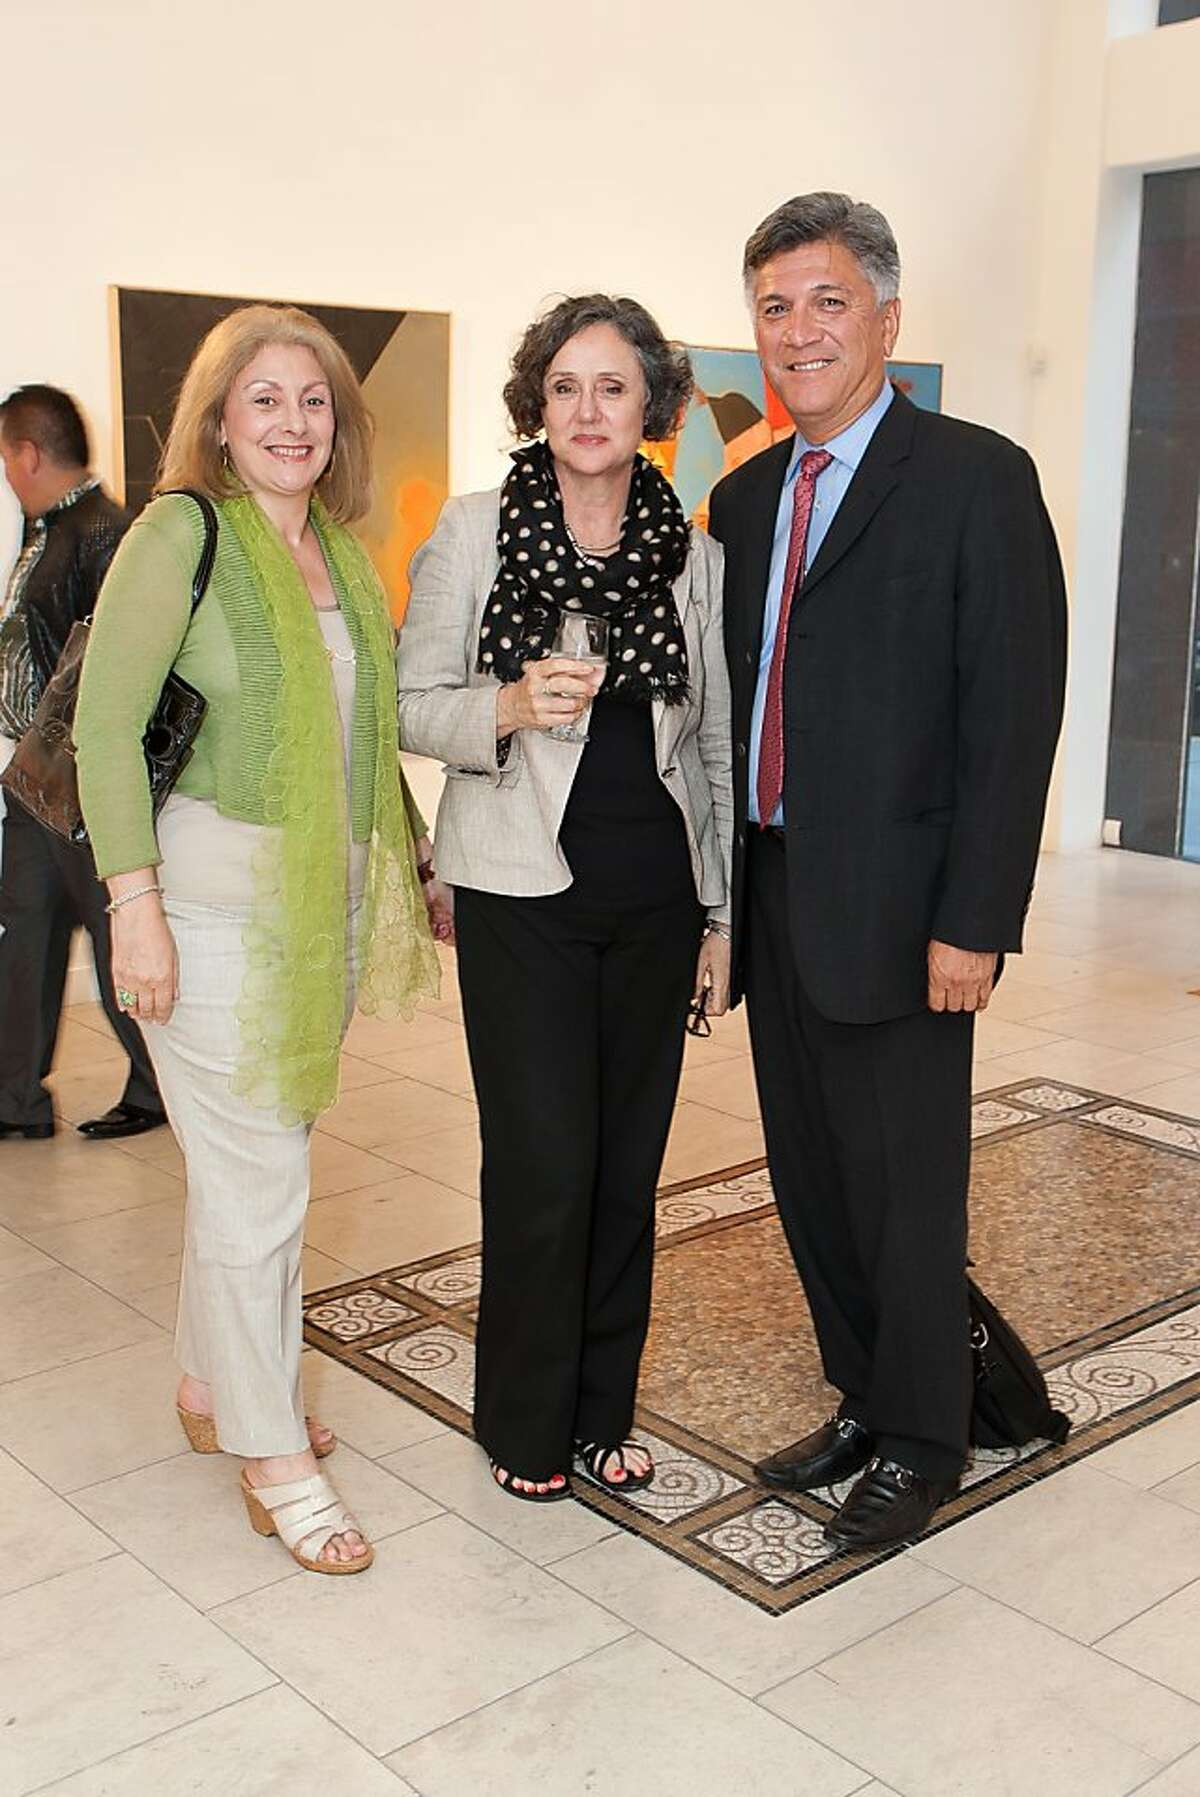 Mexican American figurative artist Miguel Conde, who has lived for decades in Spain, appeared at the opening of his first U.S. show, a retrospective, at the Serge Sorokko Gallery, running from Sept. 19-Oct. 19, 2013. A private tour was held Sept. 17, 2013. From left to right, Mara Perez, Georgianna de la Torre, and Mario Diaz of Wells Fargo Bank.